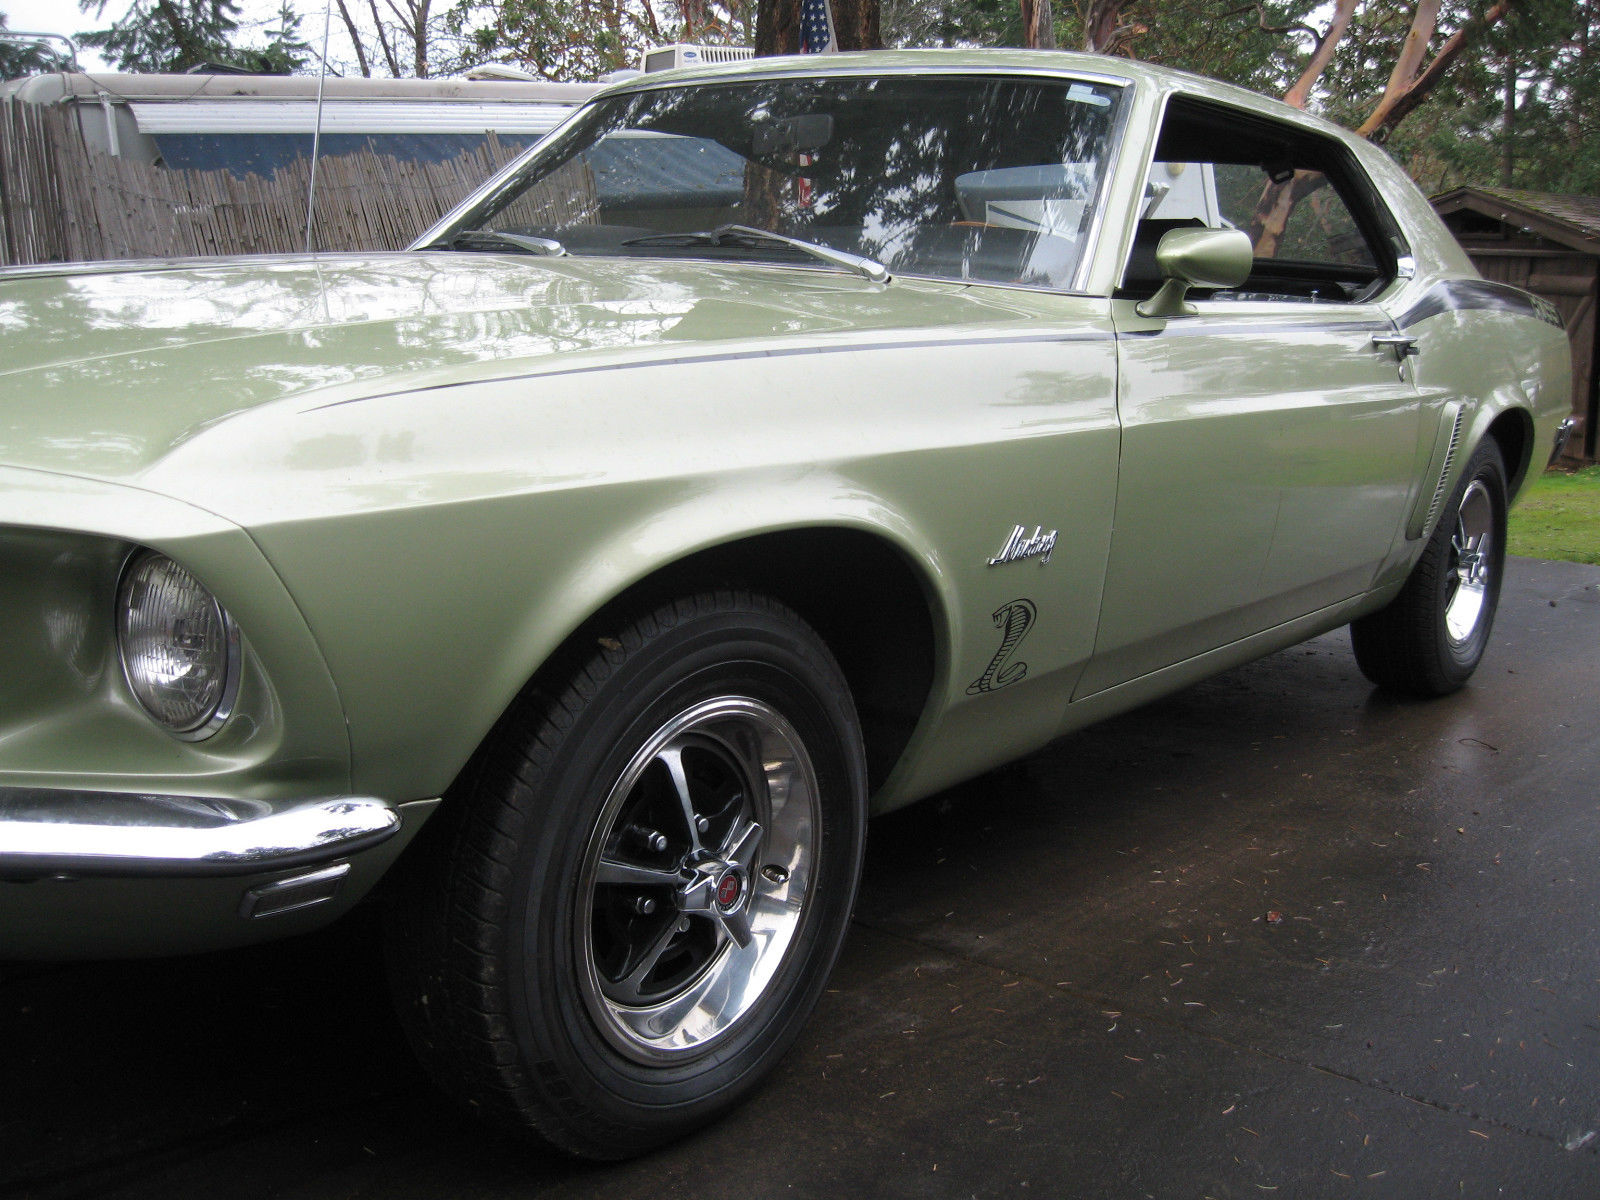 1969 mustang 2 dr hardtop coupe 302 v8 hot rod factory original color 1969 ford mustang